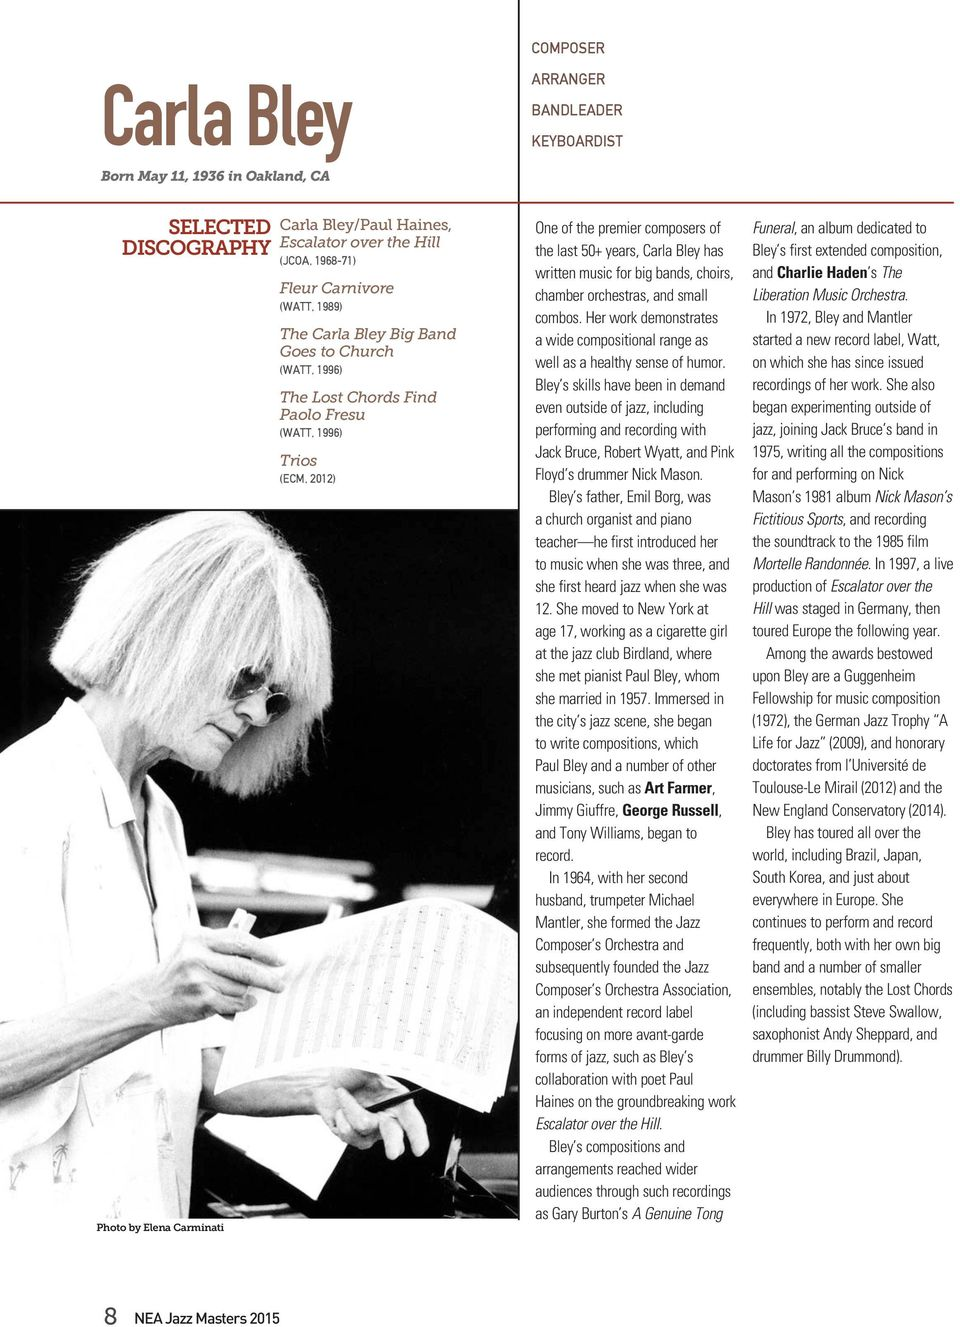 Carla Bley has written music for big bands, choirs, chamber orchestras, and small combos. Her work demonstrates a wide compositional range as well as a healthy sense of humor.